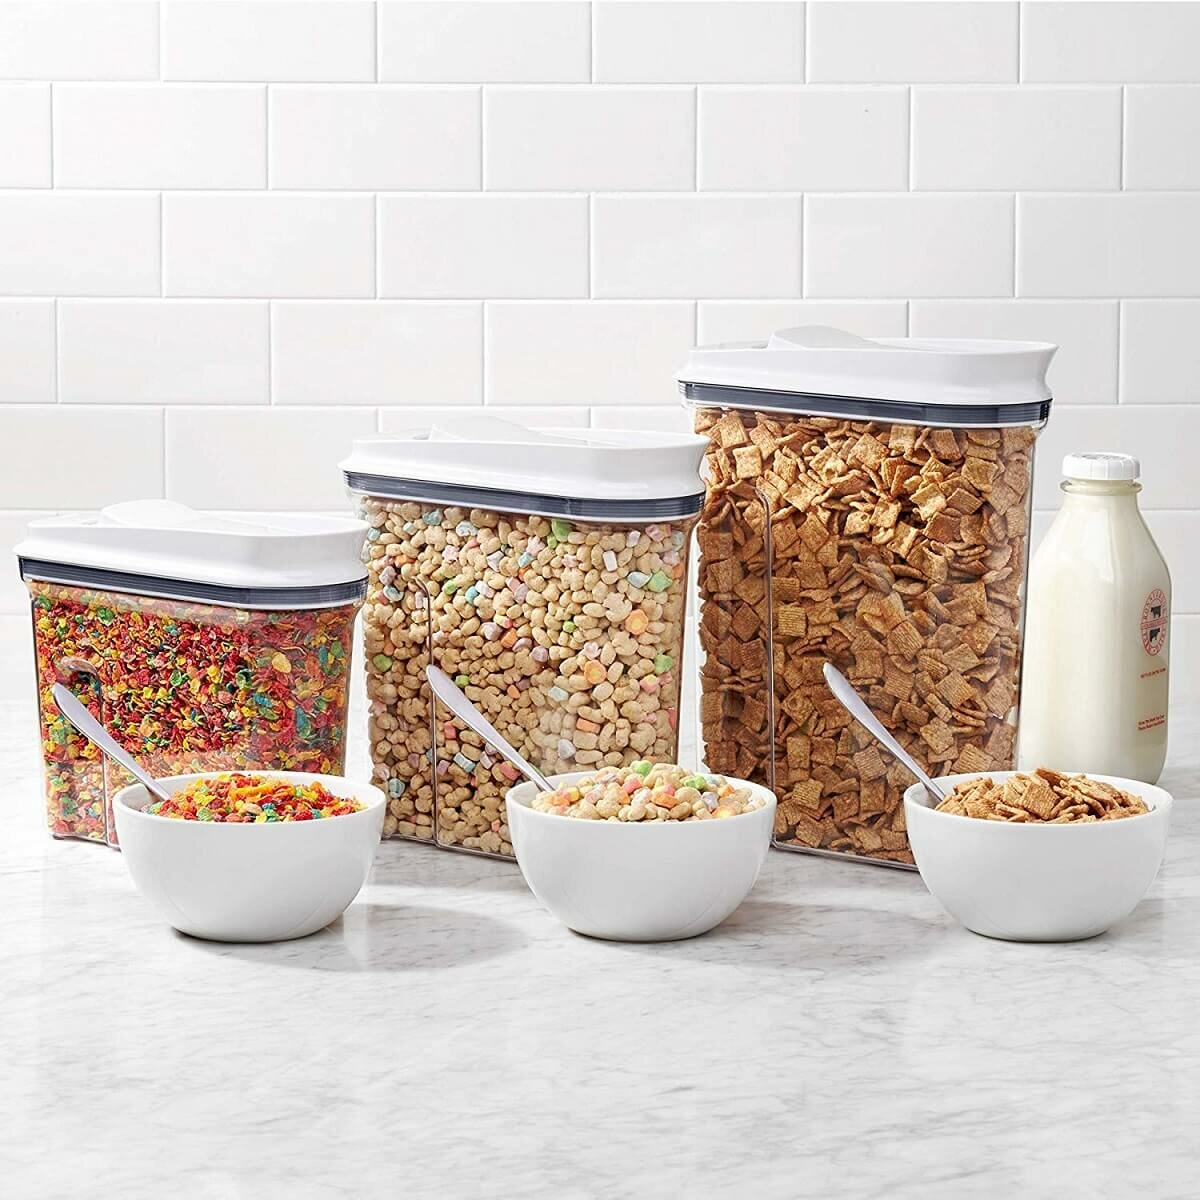 oxo cereal storage bins